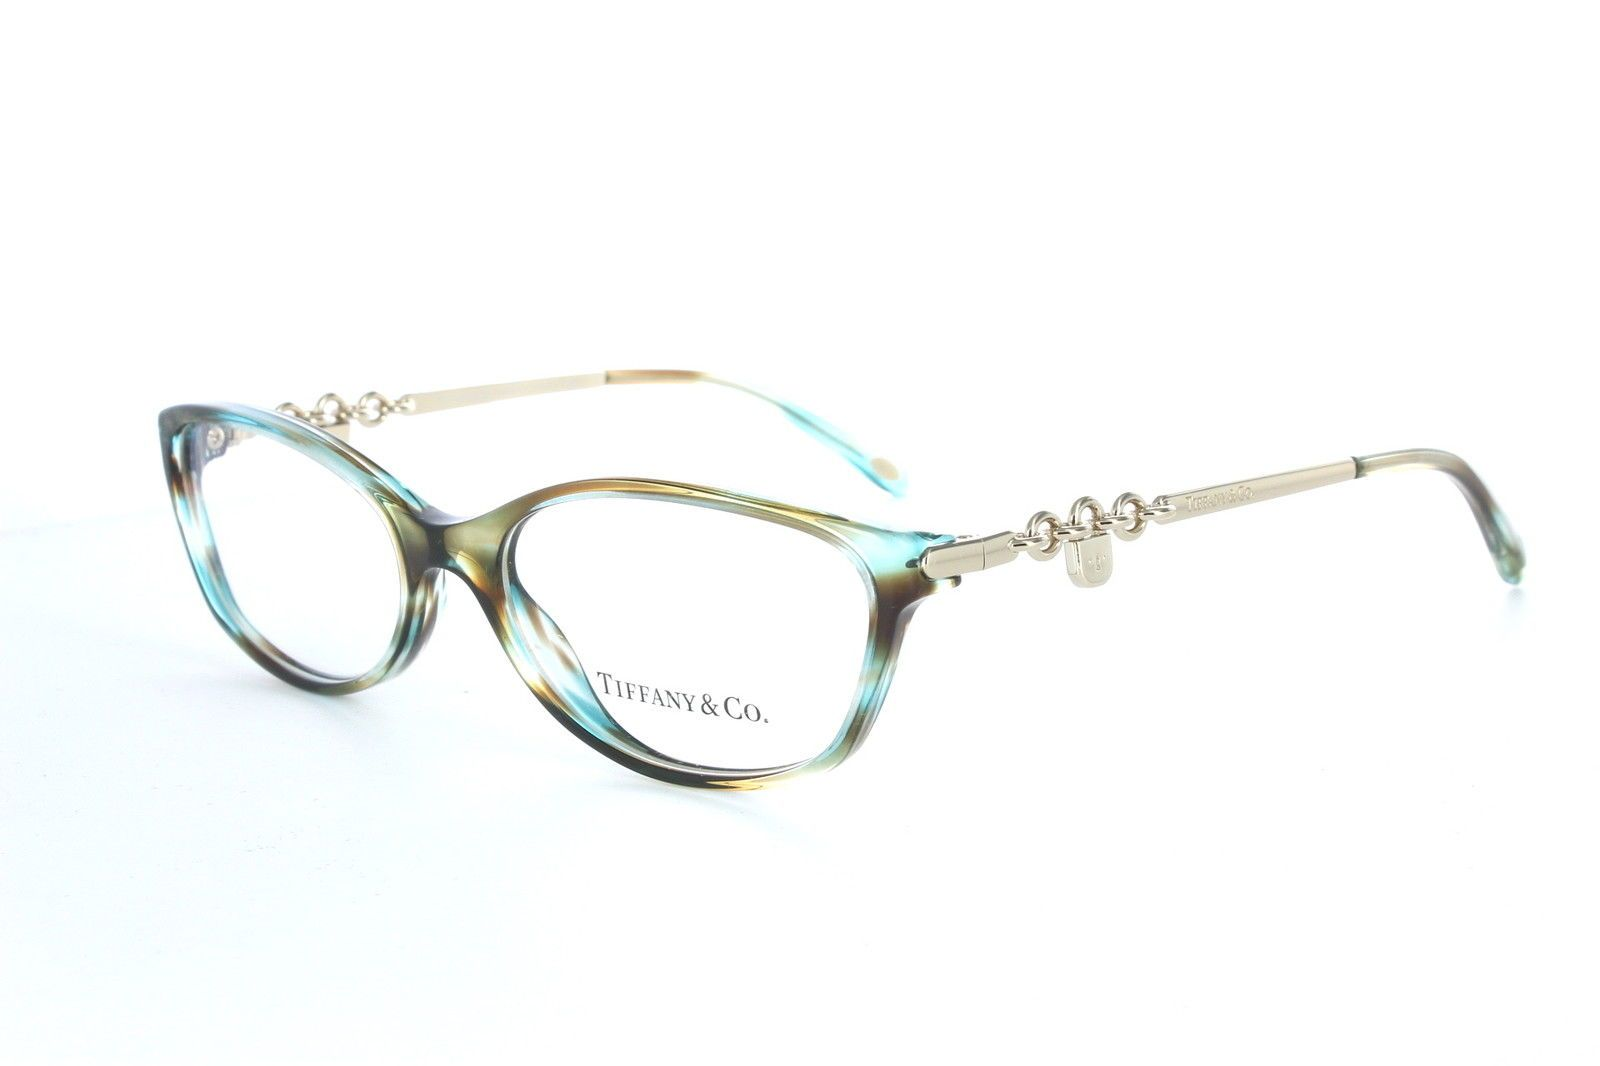 895e1a53f16 New Tiffany Co Eyeglasses TF 2063 8124 Ocean Turquoise 52mm Frames